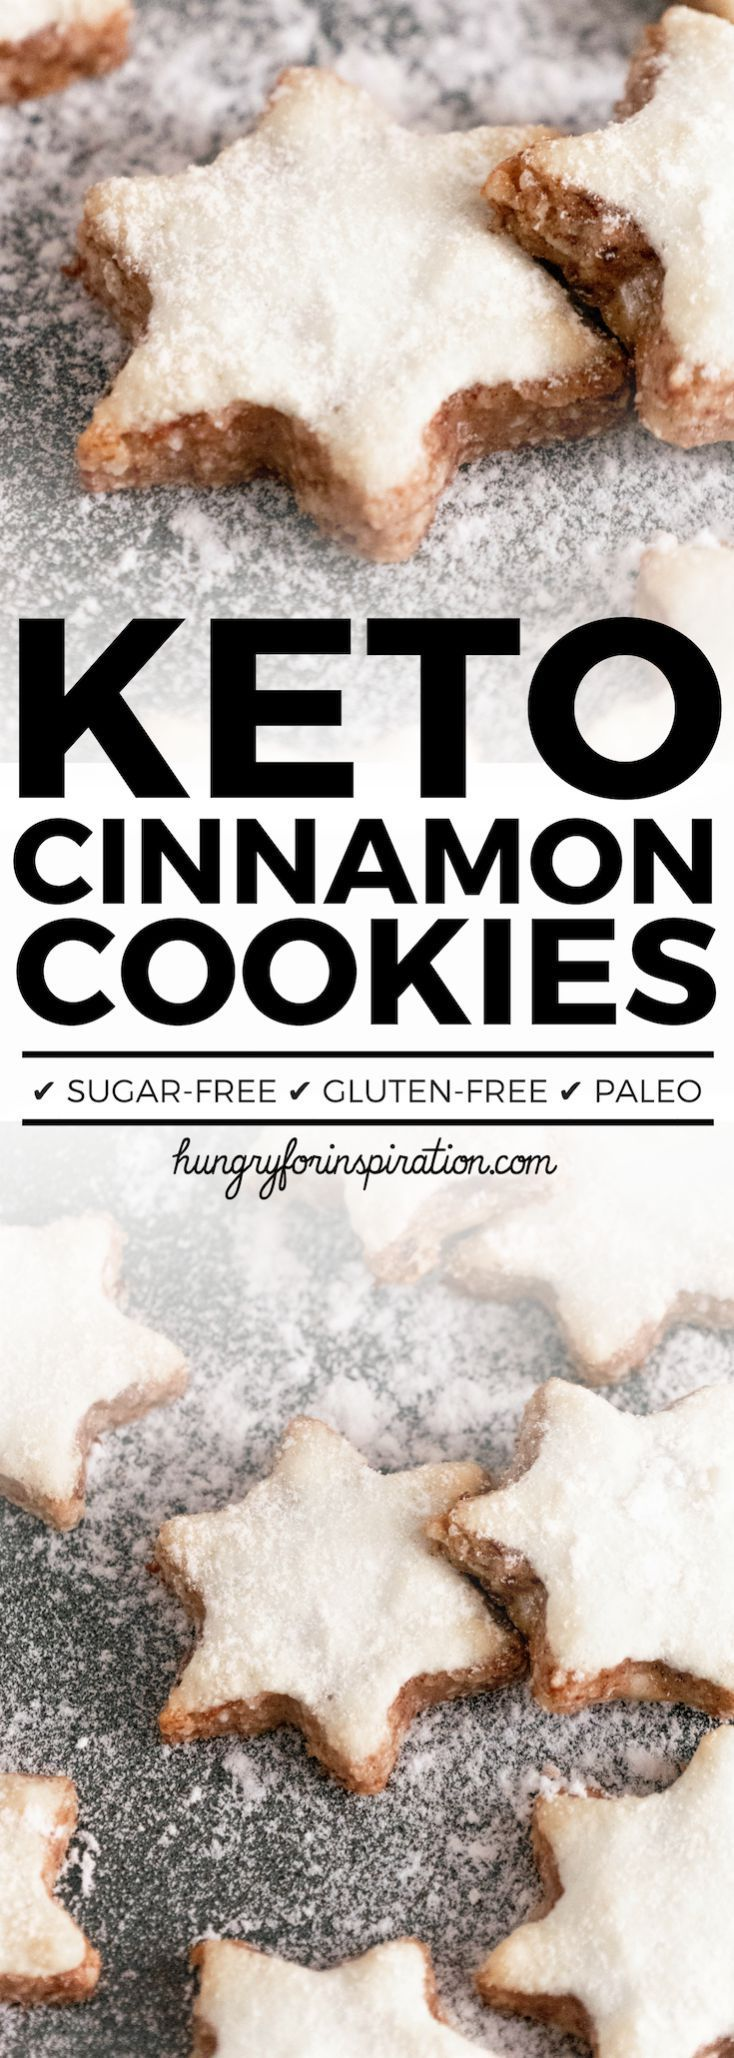 These Keto Cinnamon Star Cookies will be a perfect addition to your holiday cel…